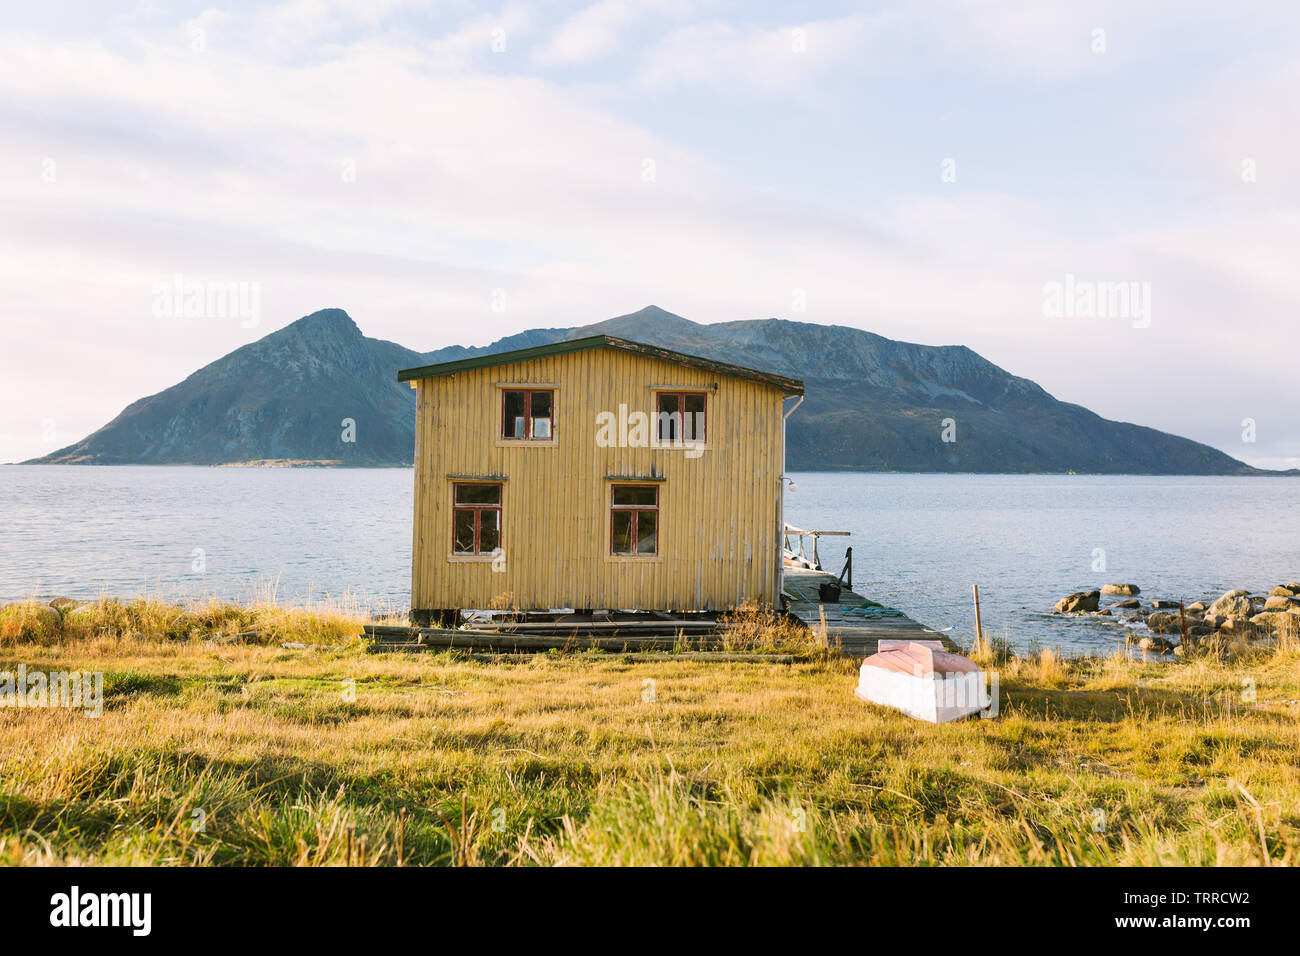 An old decaying wooden yellow house on the coast of Kvaløya island in northern Norway. In the front yard is a small boat. - Stock Image